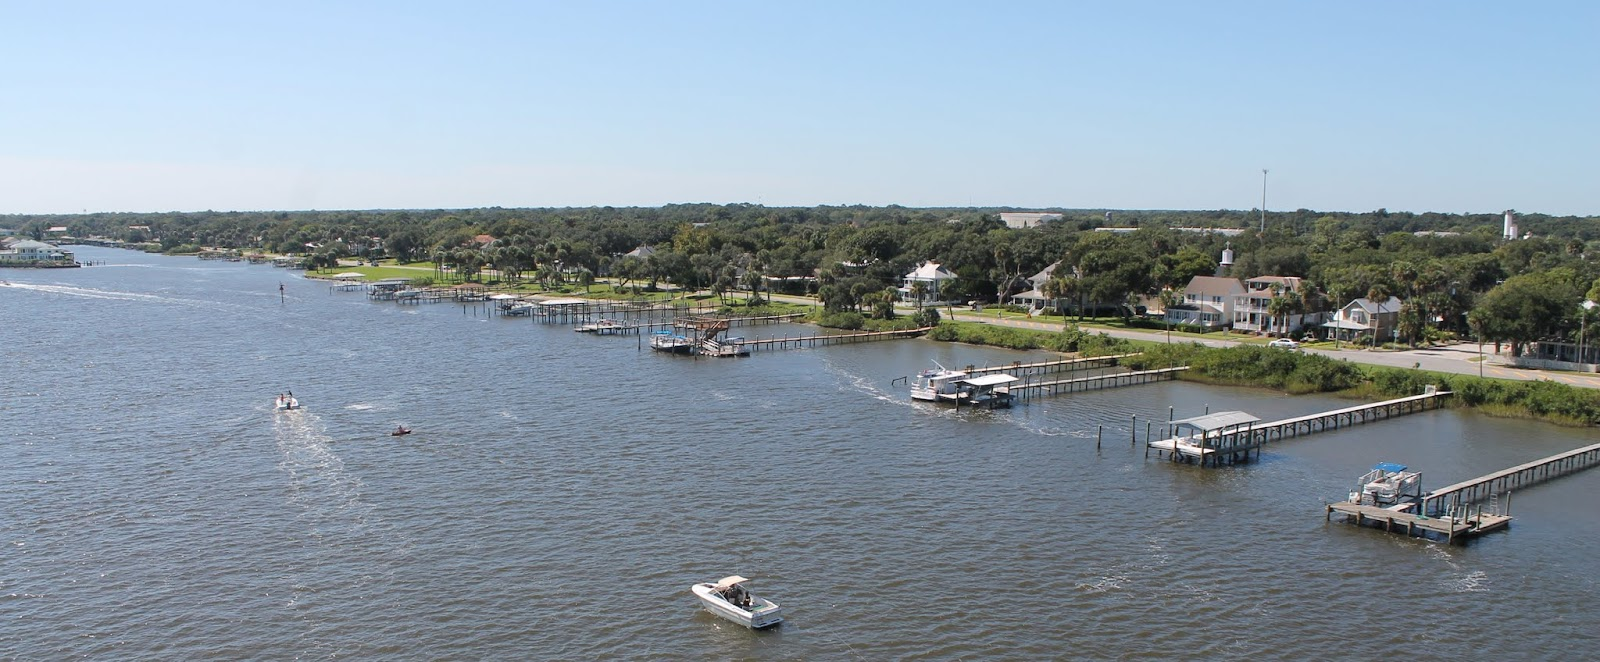 New Smyrna Beach y Halifax River, sector continental